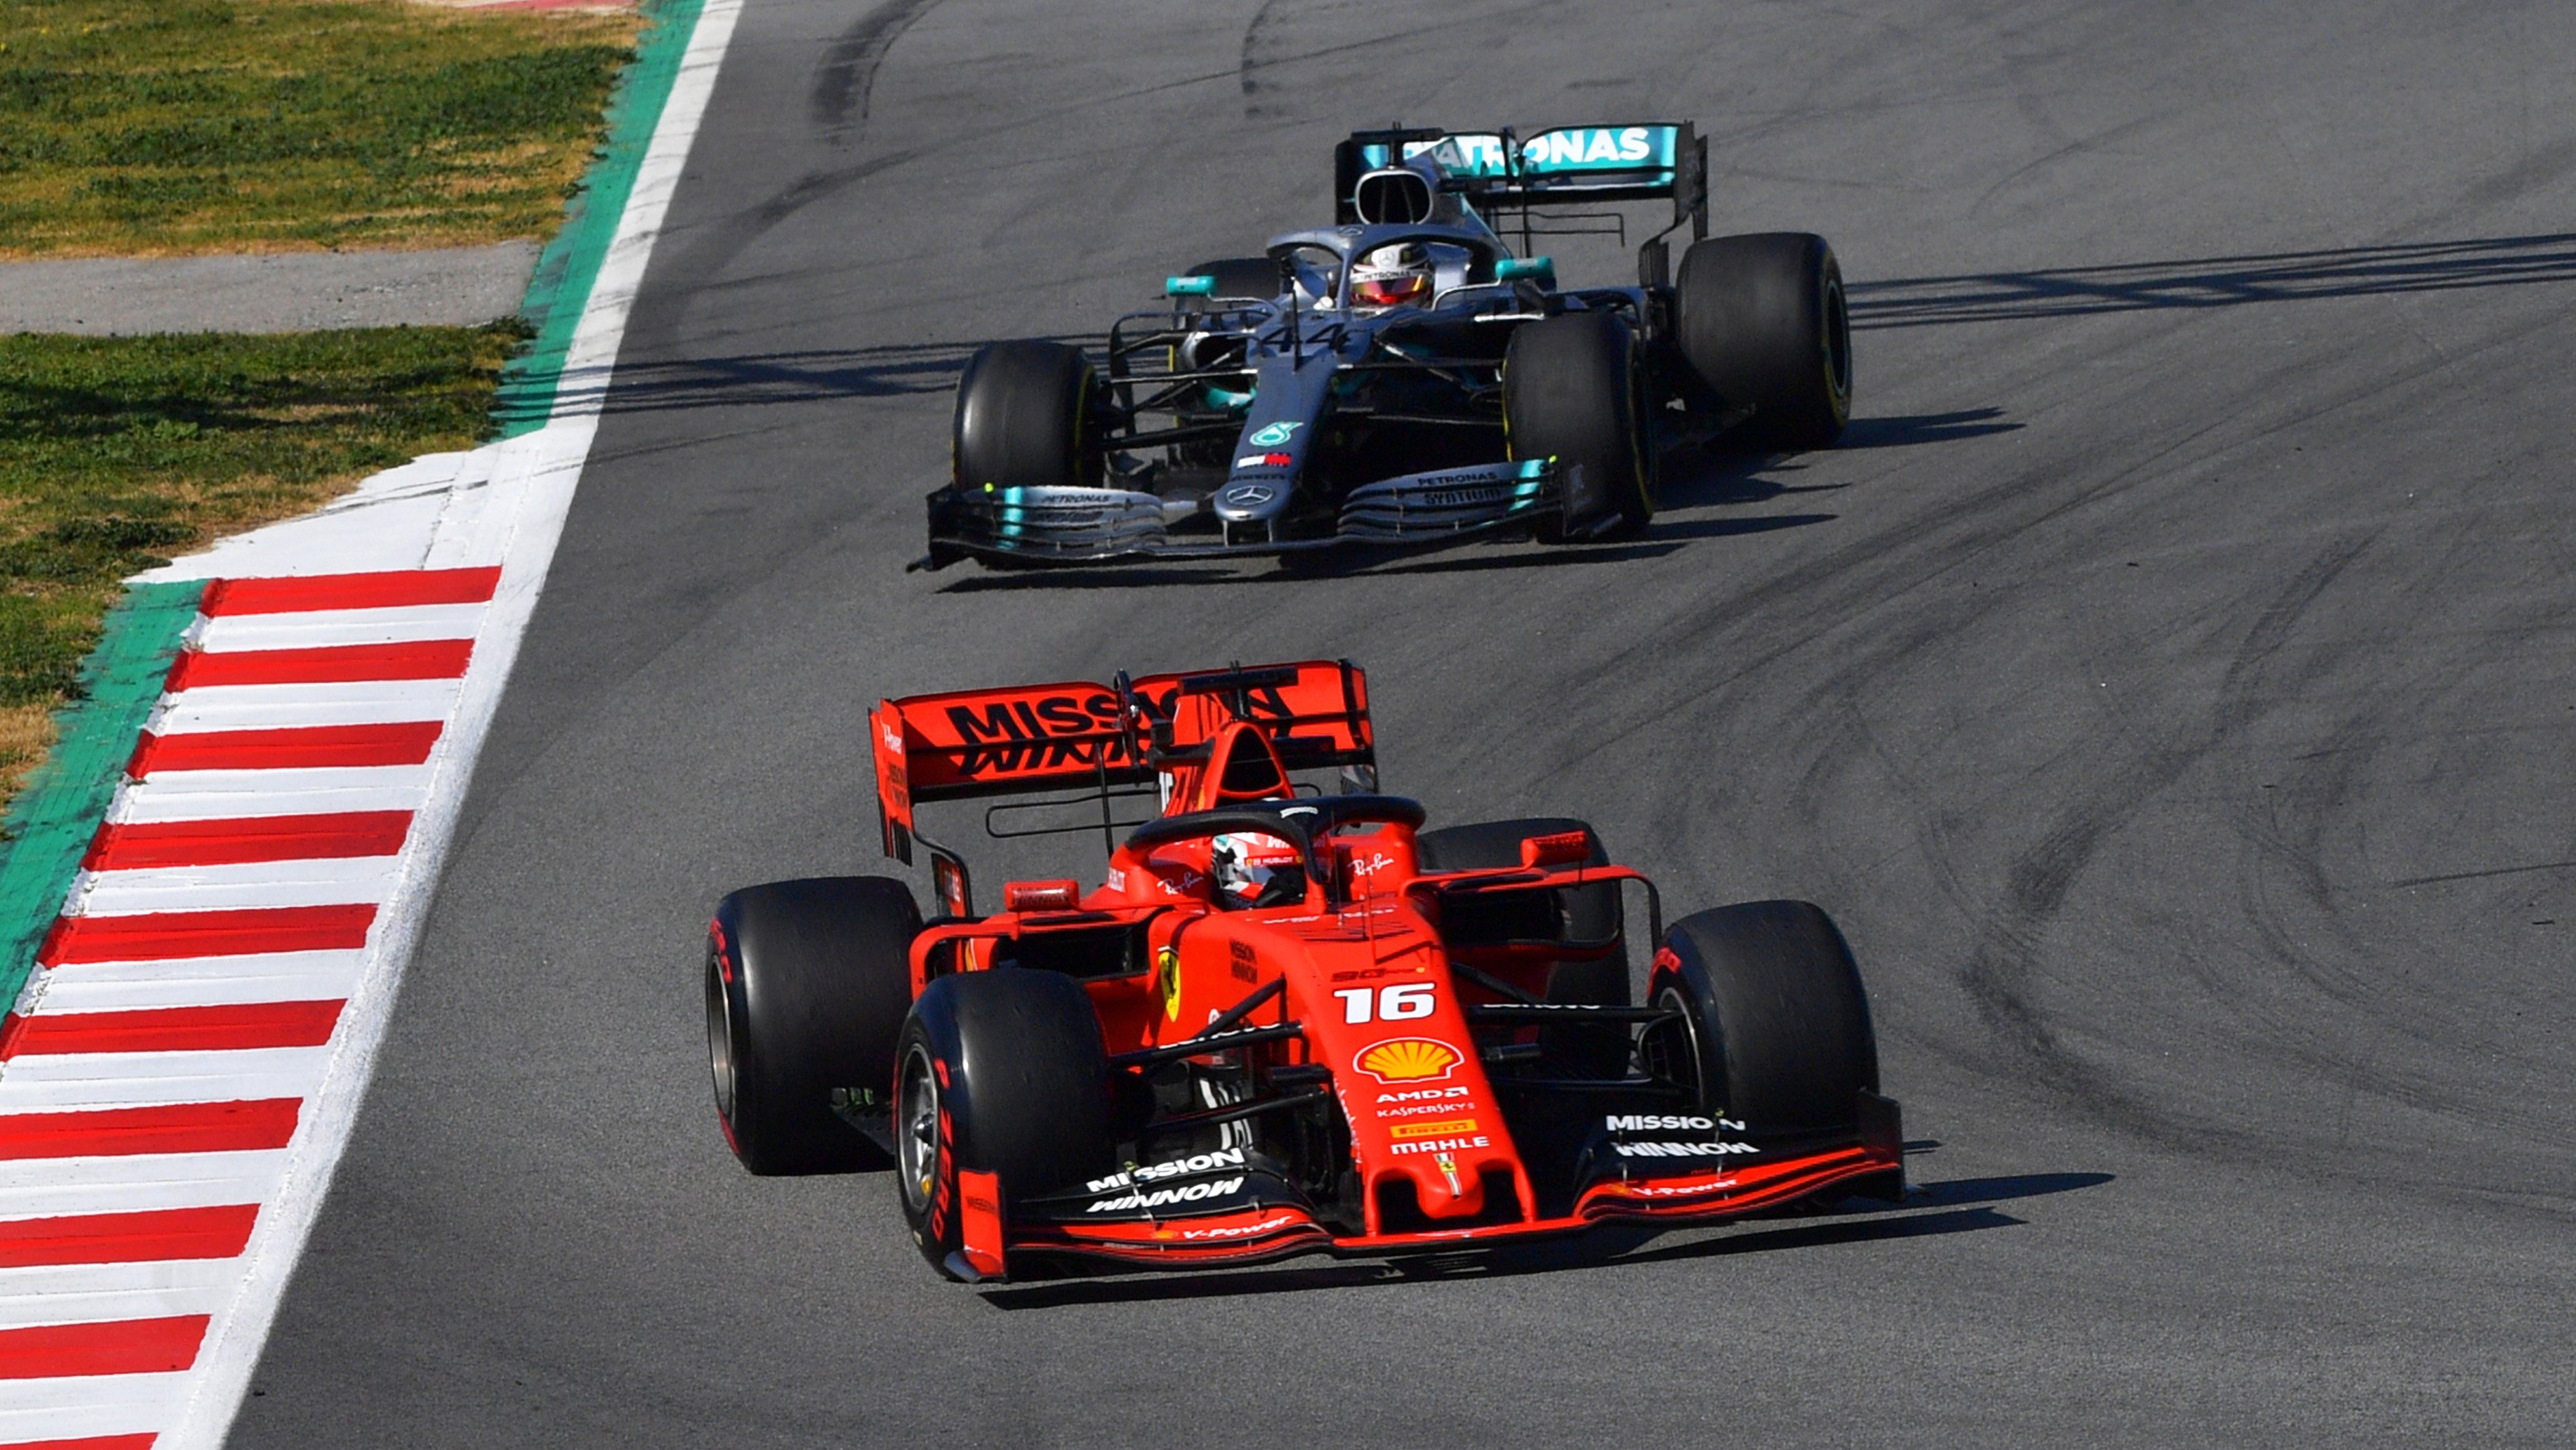 F1: Formula 1 2019: Our Writers Make Their Predictions And Hot